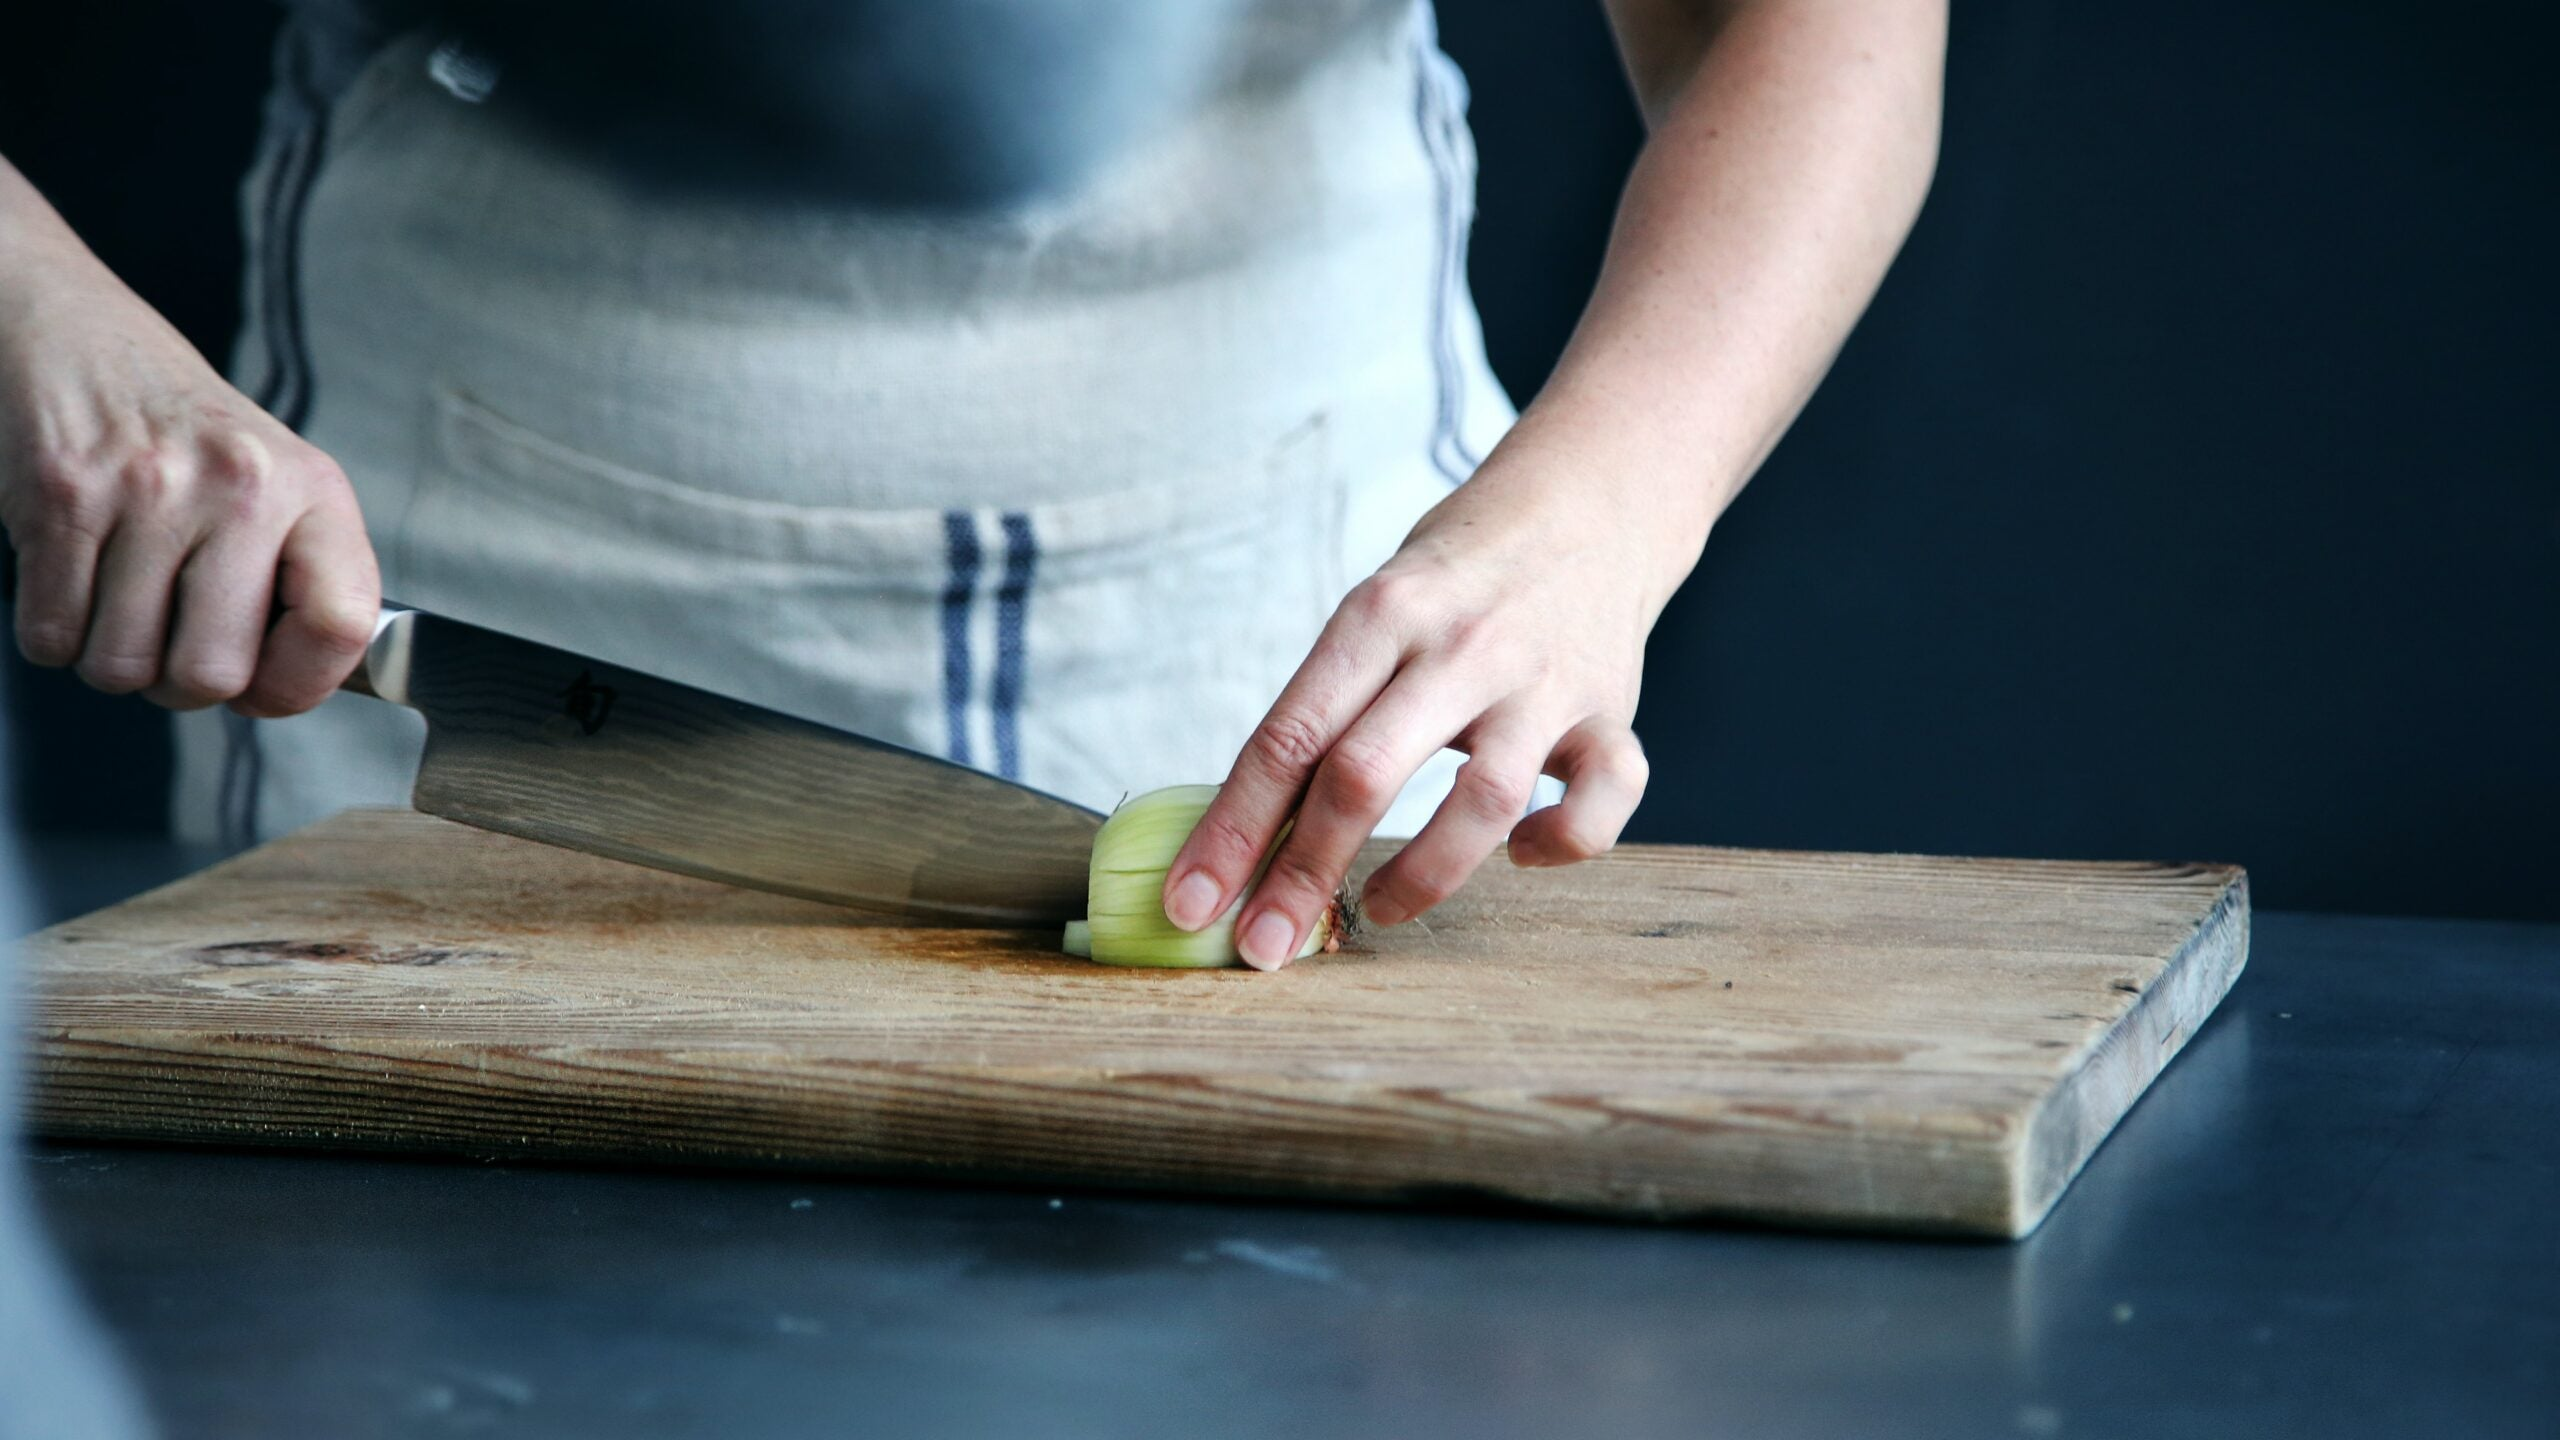 Person using a chef knfe